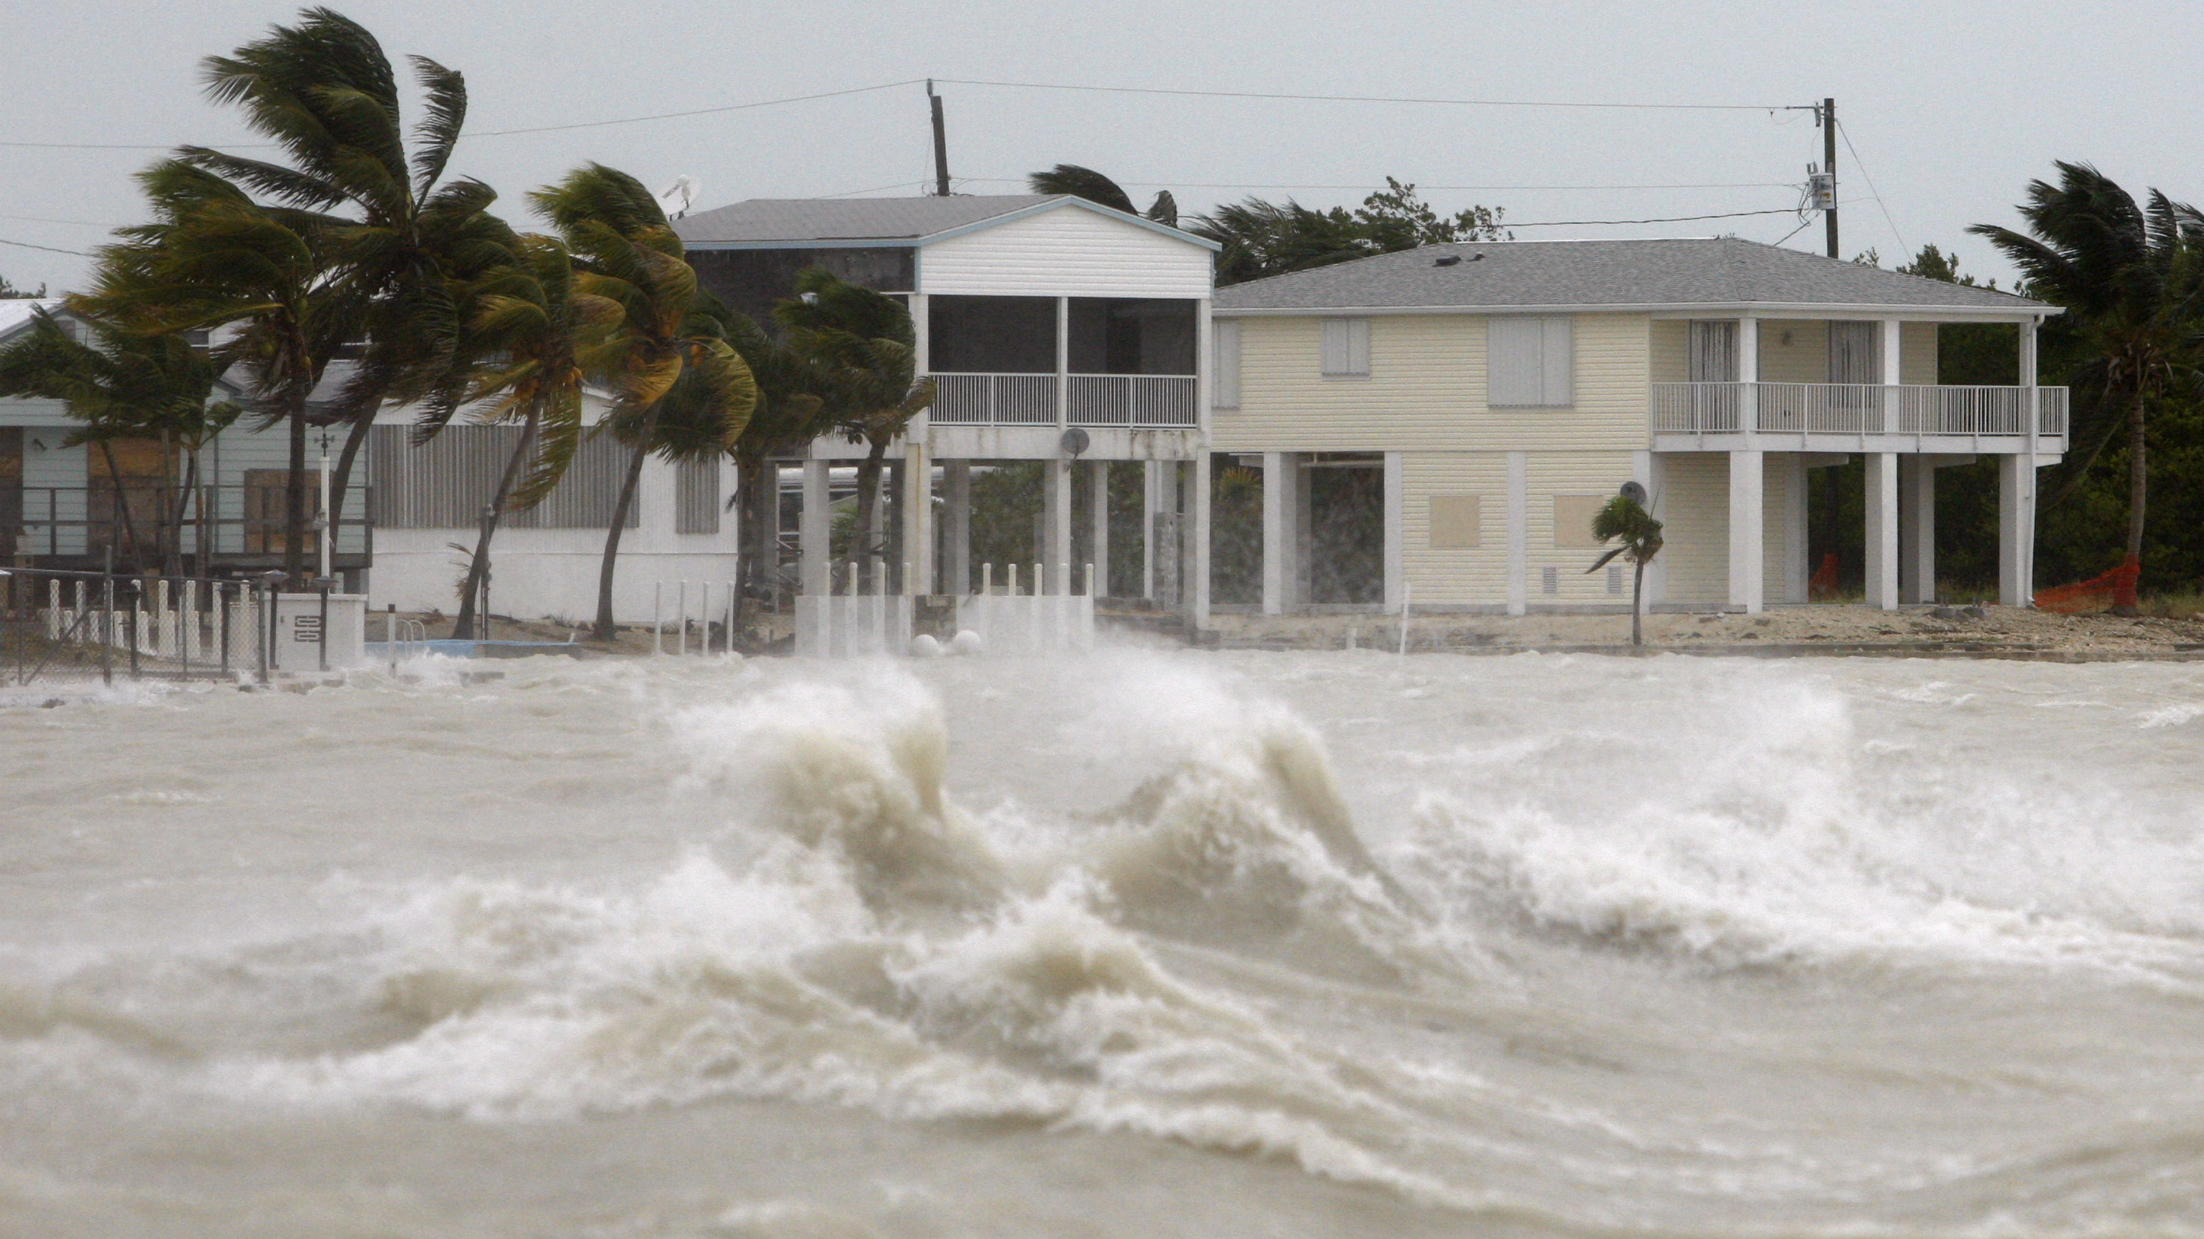 Strong waves crash around coastal houses in Key West, Florida, as Hurricane Ike passes to the south September 9, 2008. Hurricane Ike remained a Category 1 storm with winds near 80 miles per hour as it approached western Cuba before charging toward the oil-rich South Texas coast later in the week, the U.S. National Hurricane Center said in its 8 a.m. EDT report Tuesday. REUTERS/Carlos Barria